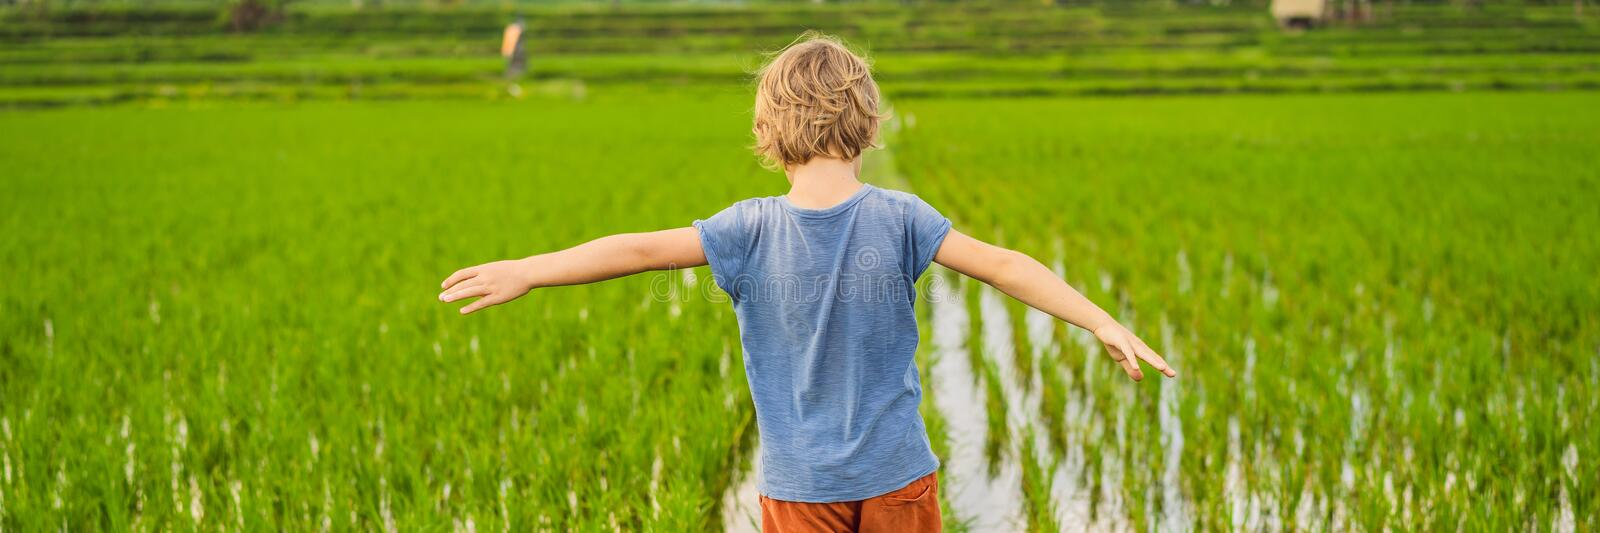 Tourist boy walks in a rice field. Traveling with children concept. Kids friendly place BANNER, LONG FORMAT royalty free stock photos